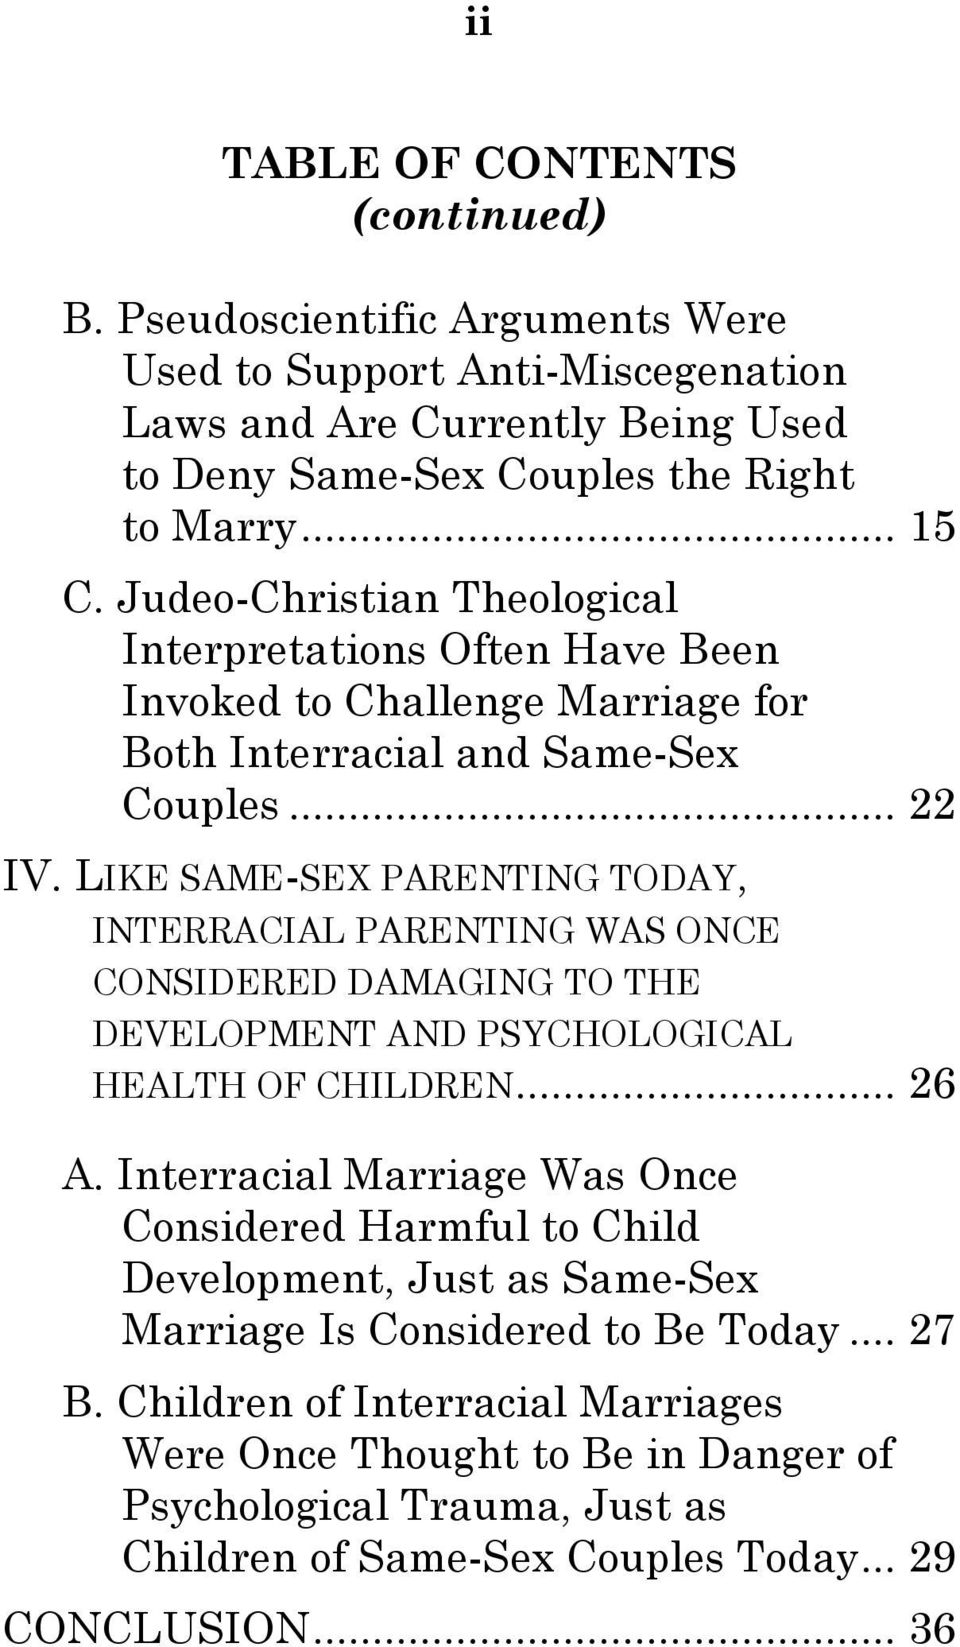 LIKE SAME-SEX PARENTING TODAY, INTERRACIAL PARENTING WAS ONCE CONSIDERED DAMAGING TO THE DEVELOPMENT AND PSYCHOLOGICAL HEALTH OF CHILDREN... 26 A.